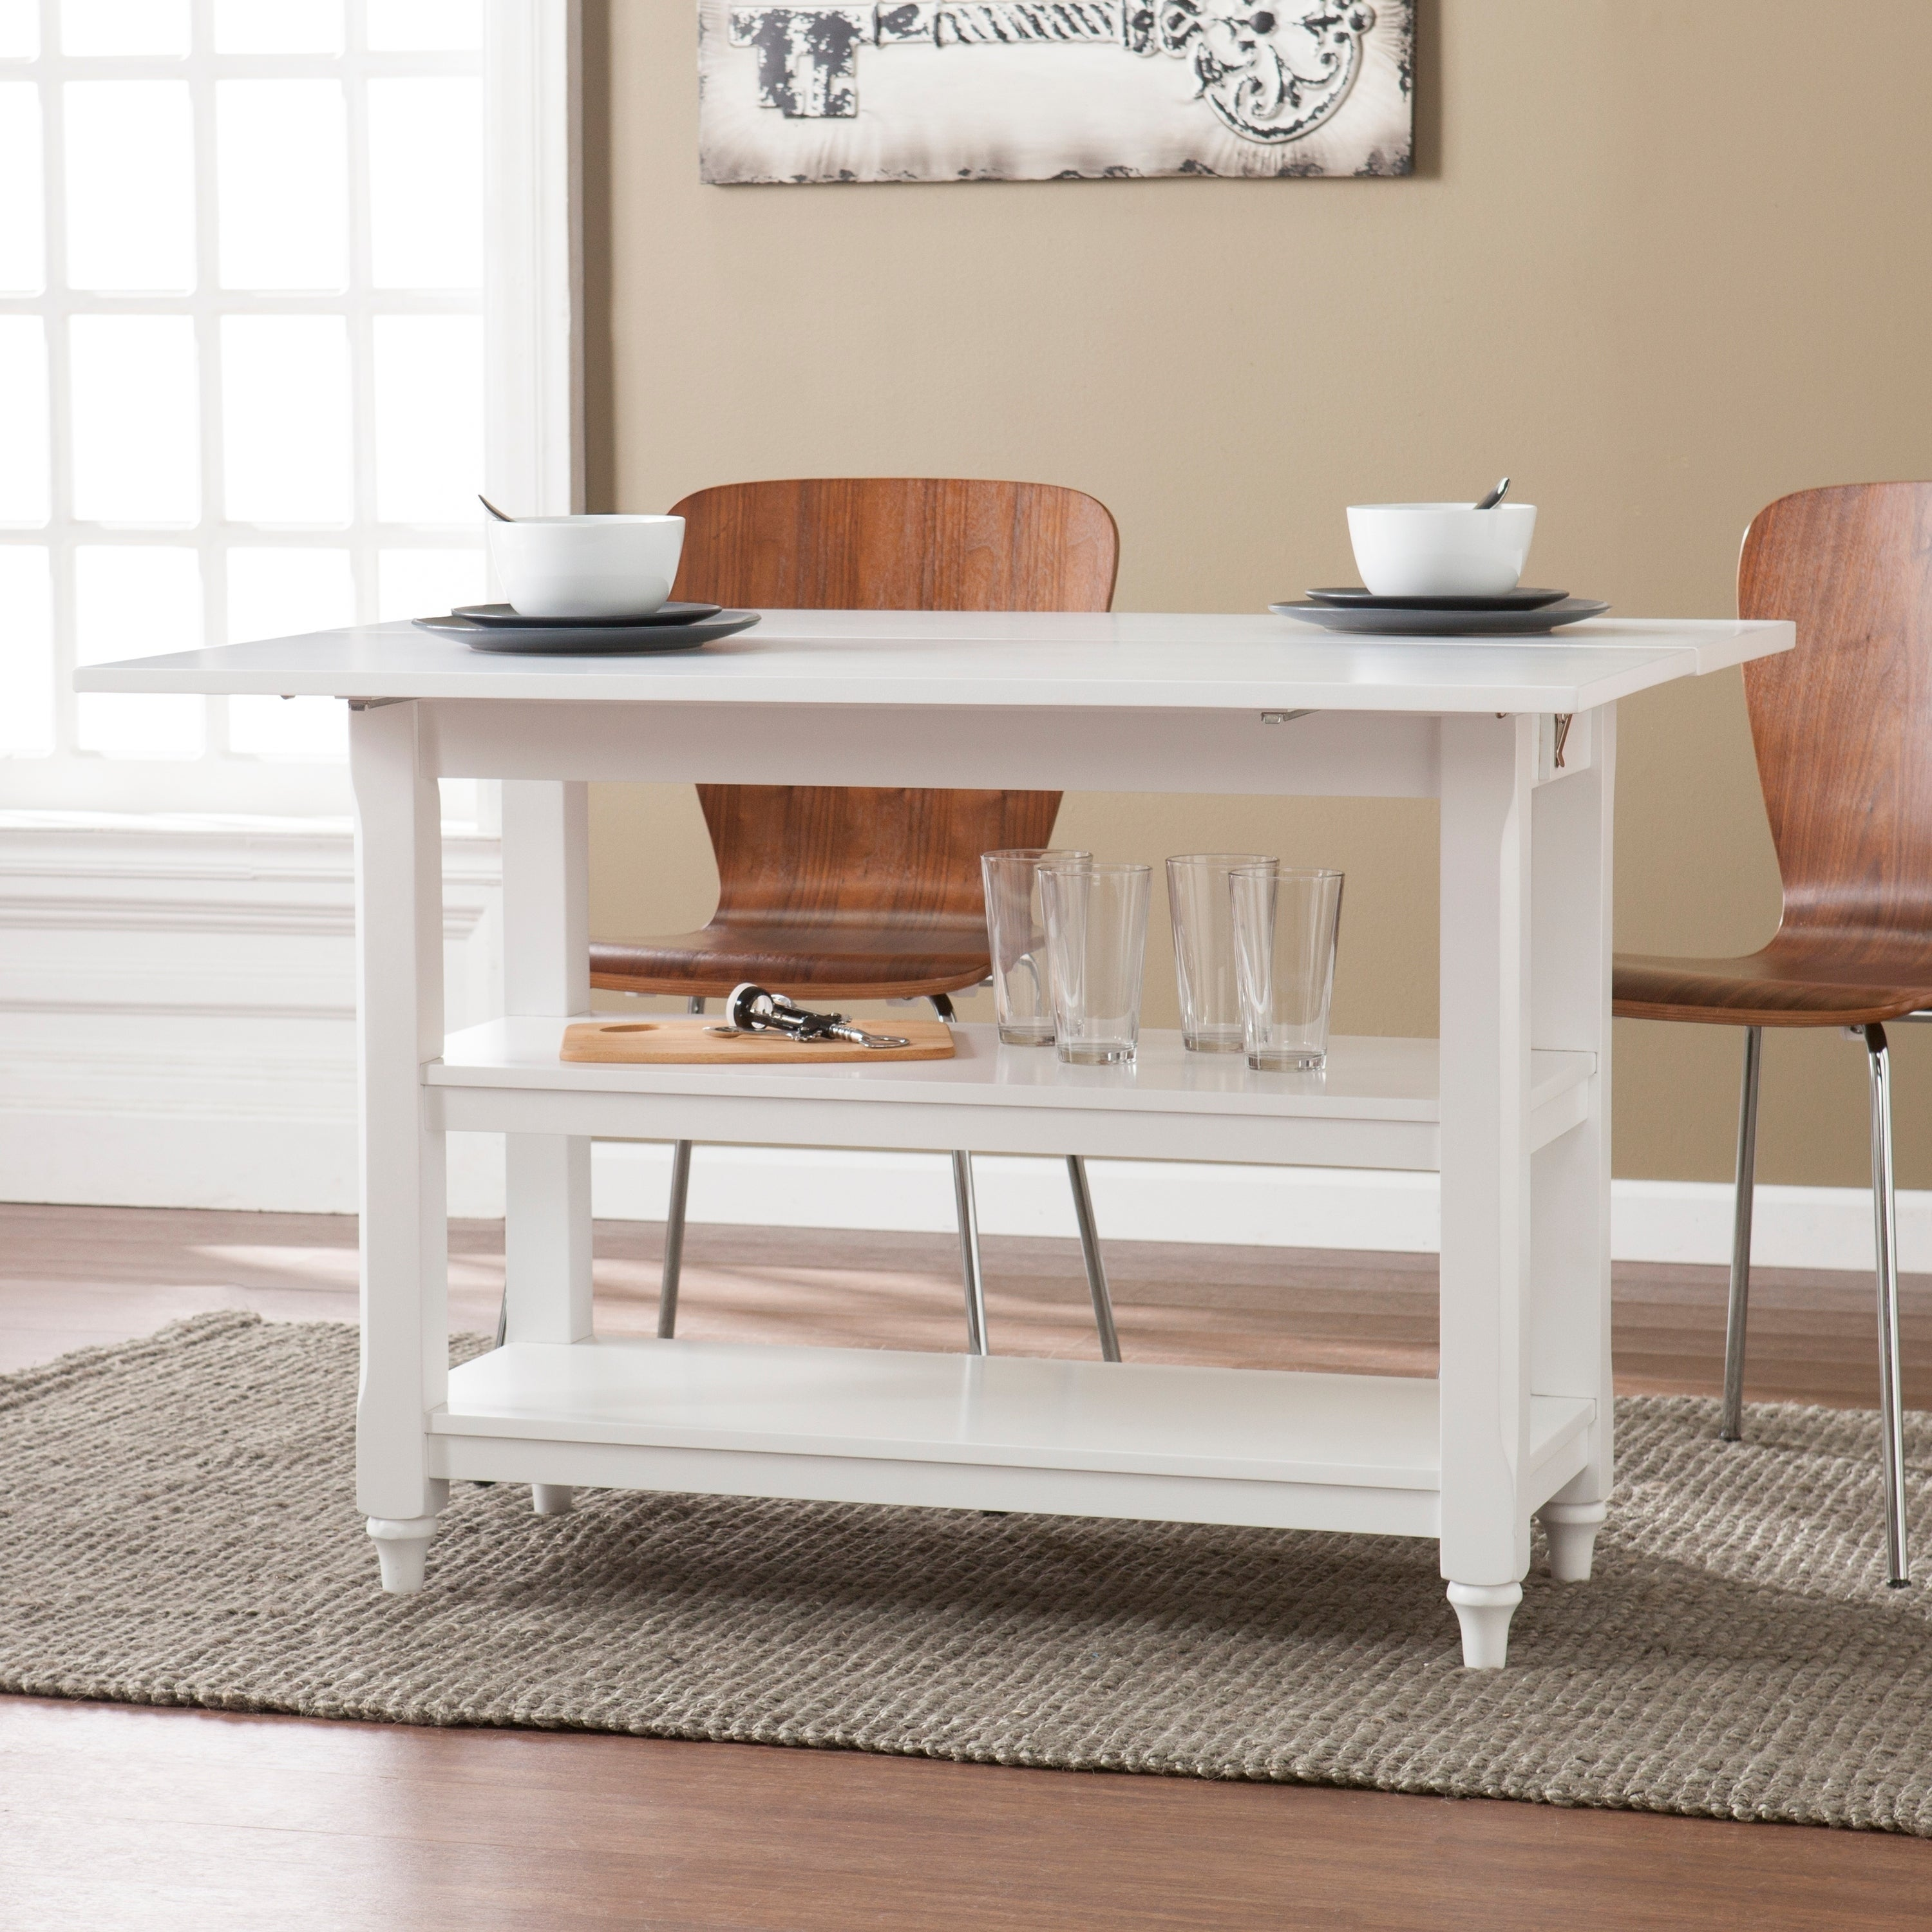 Harper Blvd Brushford White Convertible Console To Dining Table